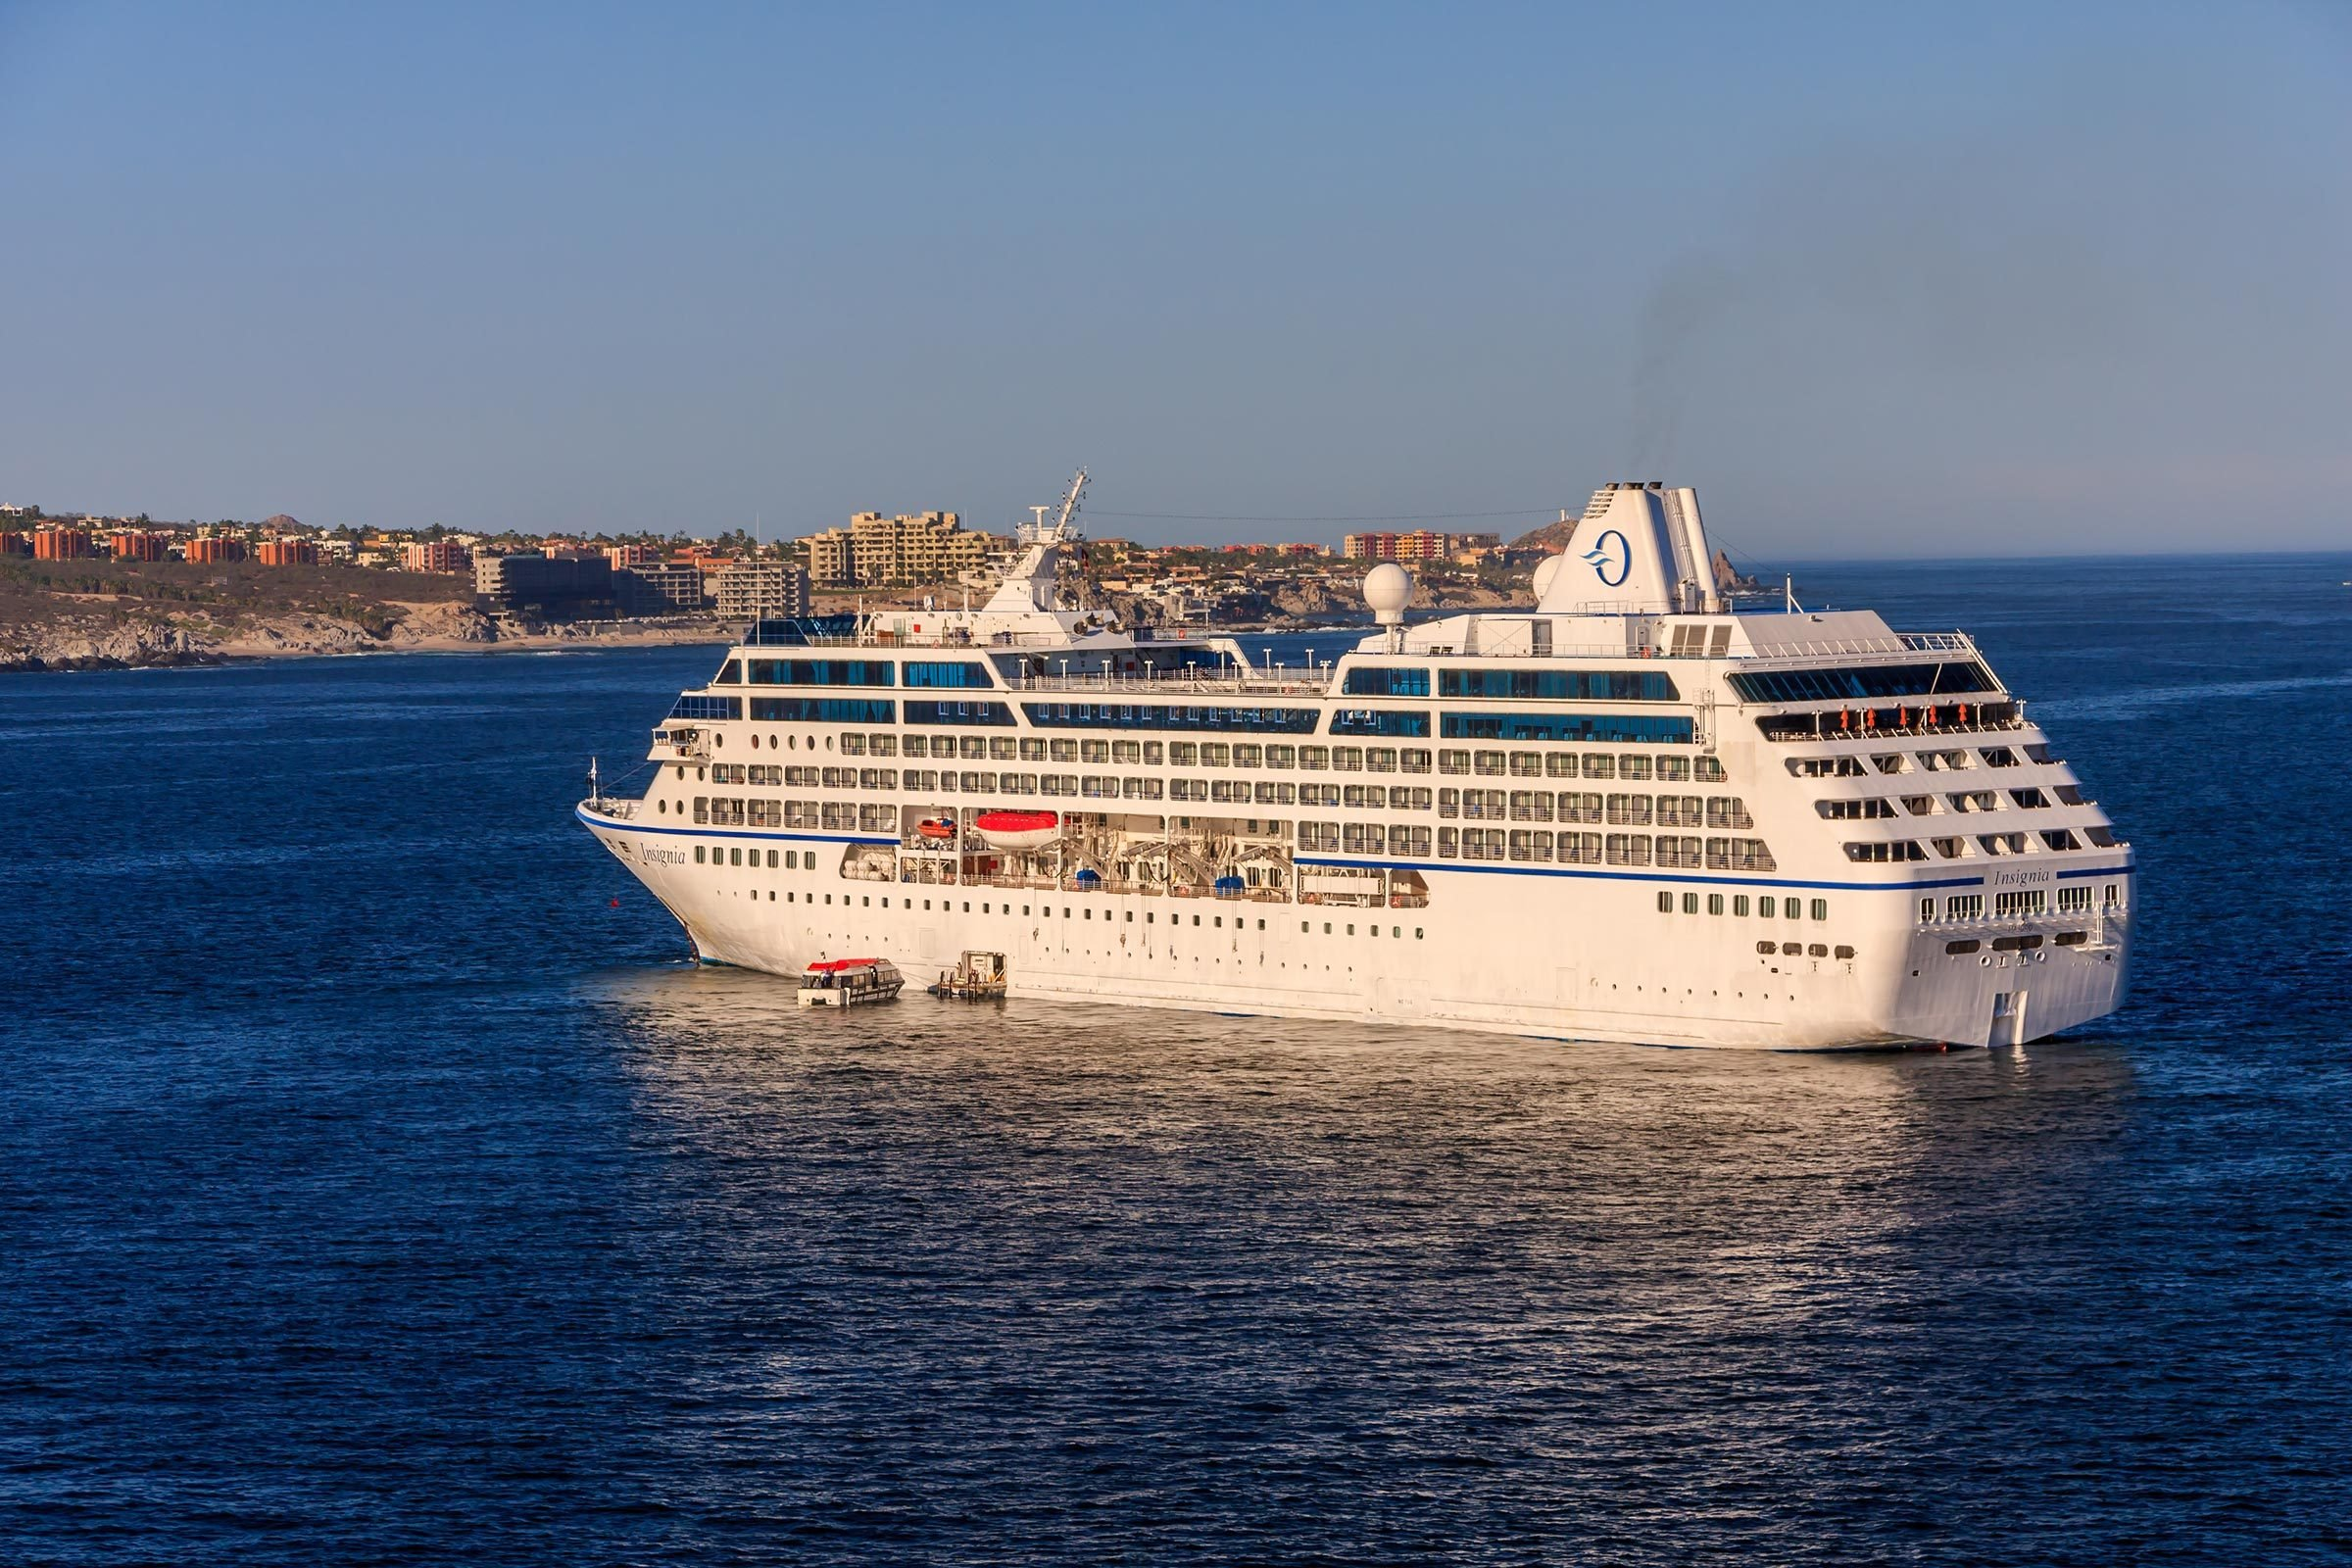 Cabo San Lucas, Mexico - June 19, 2018 - MS Insignia cruise ship was at anchor in Cabo San Lucas, tendering it's passengers to the island. MS Insignia belongs to Oceania Cruise Line